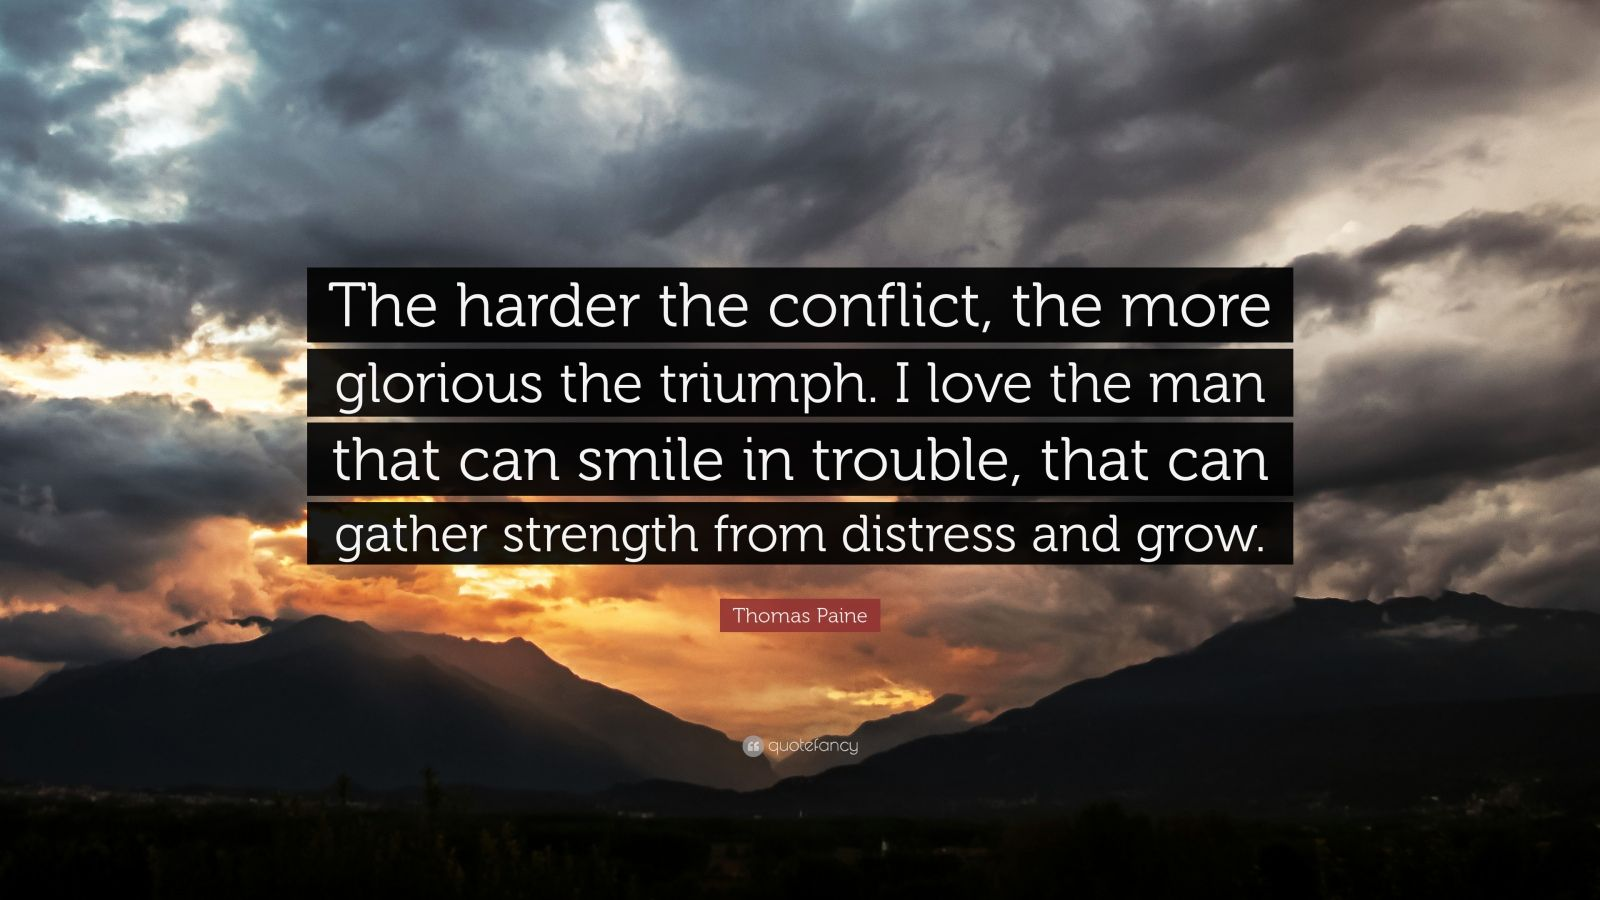 """Thomas Paine Quote: """"The harder the conflict, the more glorious the triumph. I love the man that can smile in trouble, that can gather strength from distress and grow."""""""